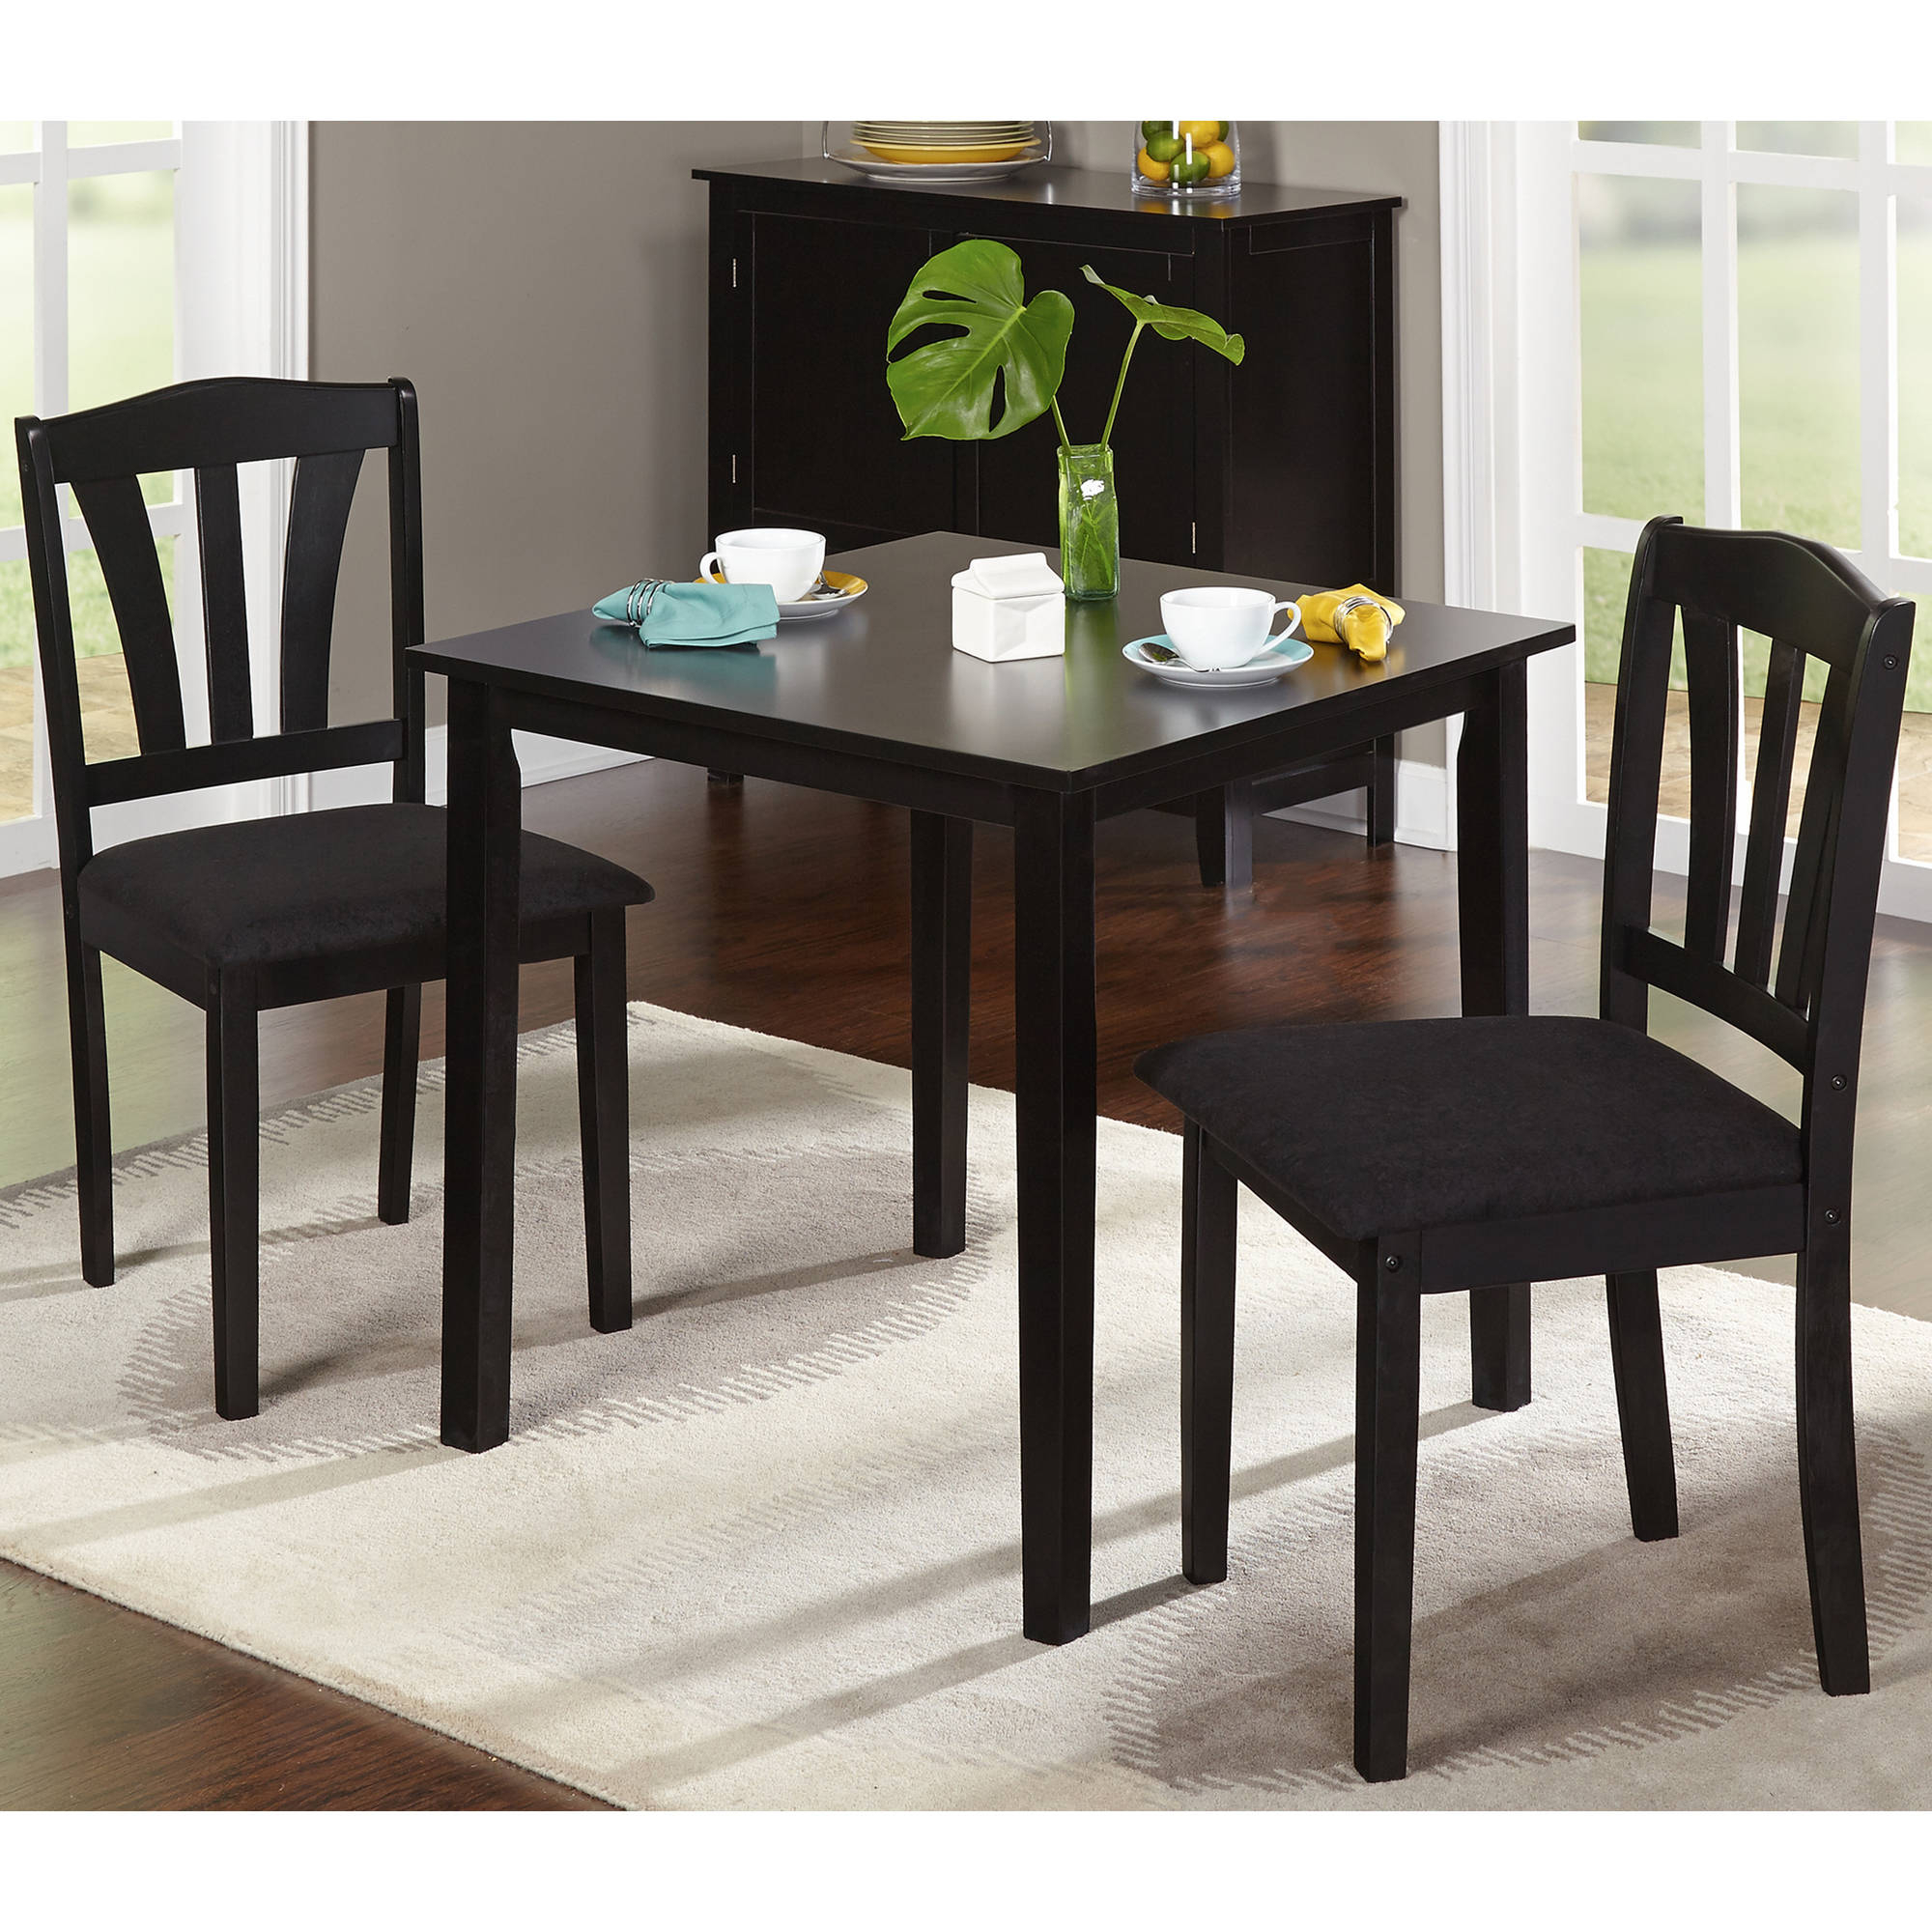 Featured Image of 3 Piece Dining Sets